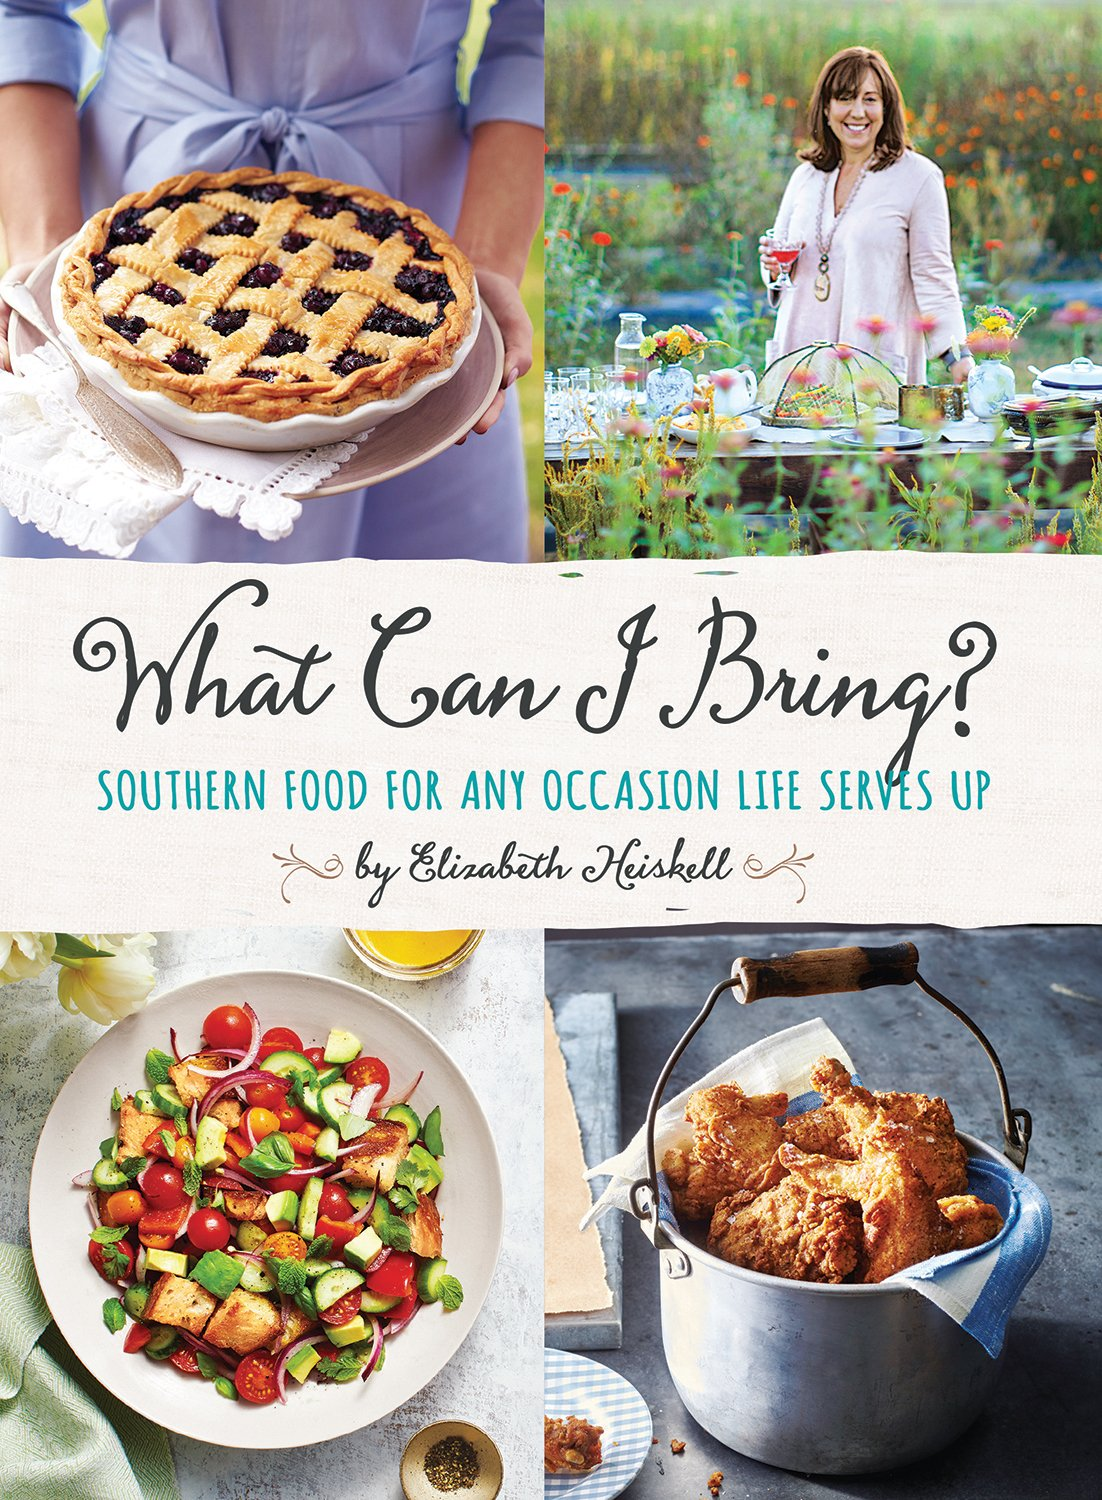 What Can I Bring?: Southern Food for Any Occasion Life Serves Up by Elizabeth Heiskell